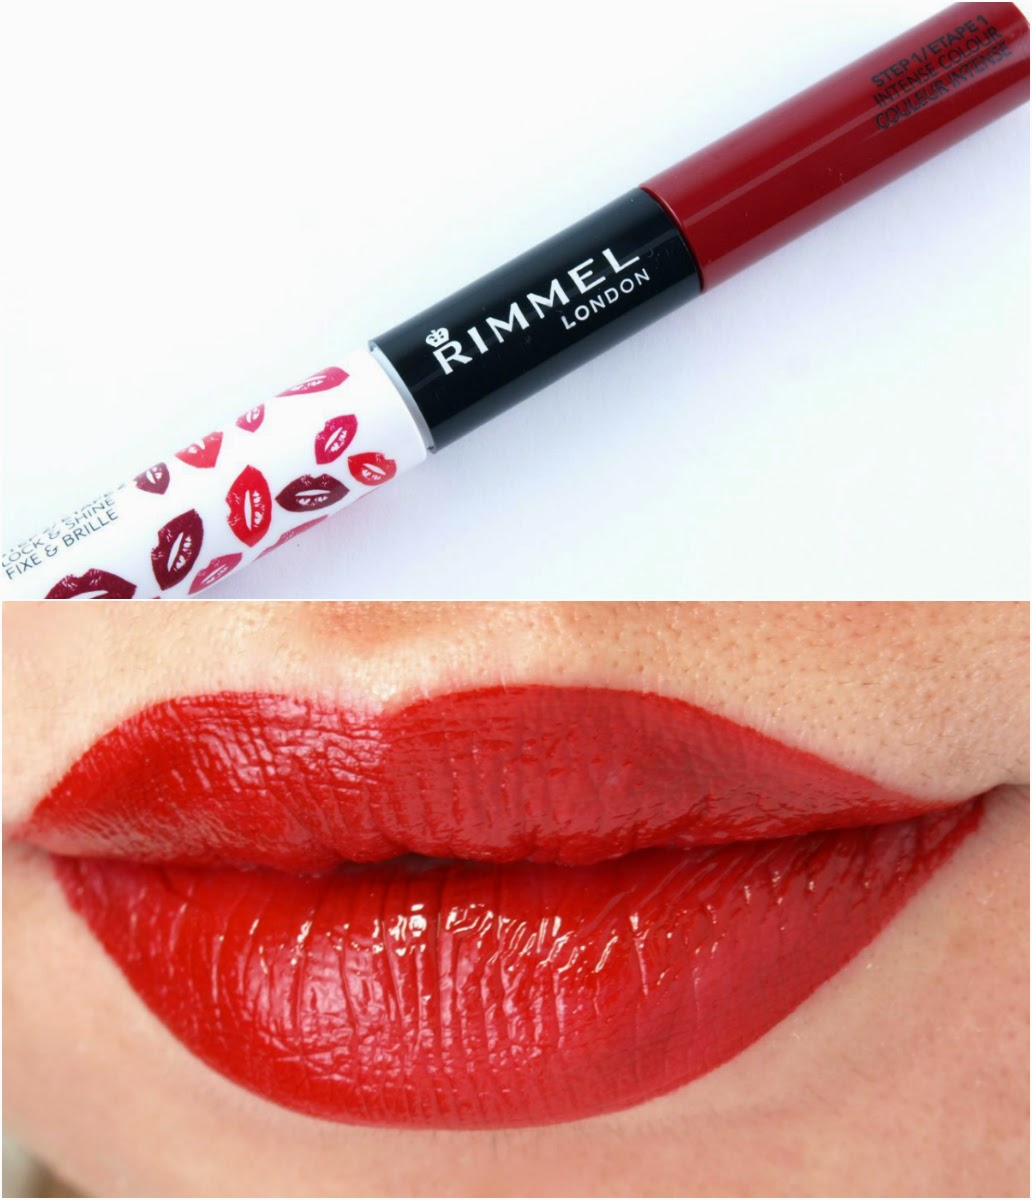 provocalips rimmel london 550 play with fire